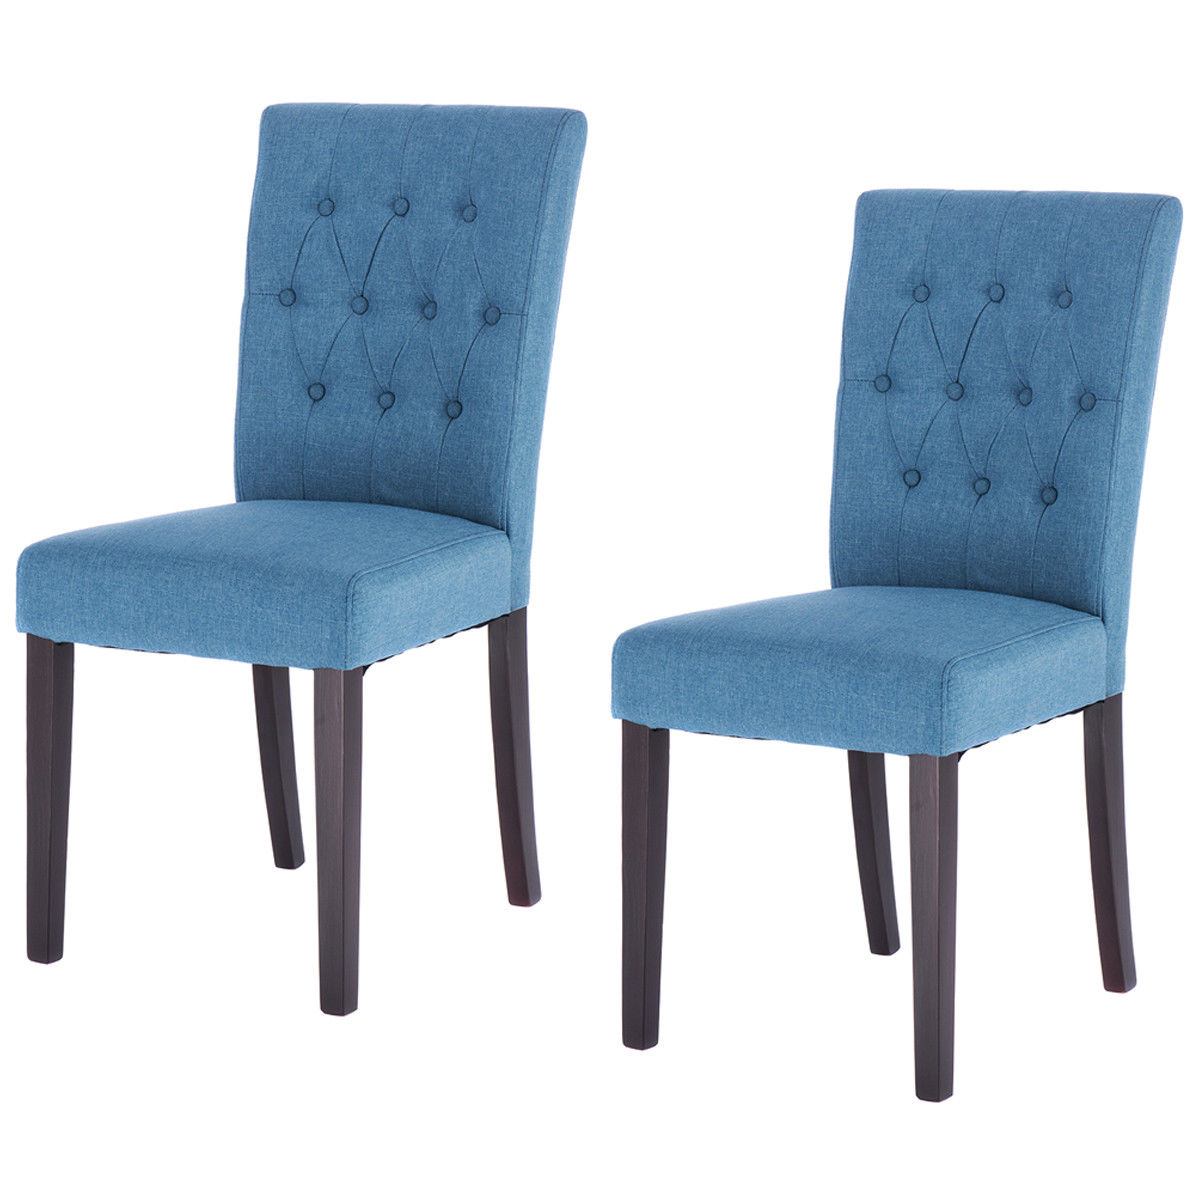 Giantex Set of 2pcs Modern Fabric Dining Chair Armless Accent Tufted Upholstered with Solid Wood Legs Home Furniture HW52778BL все цены